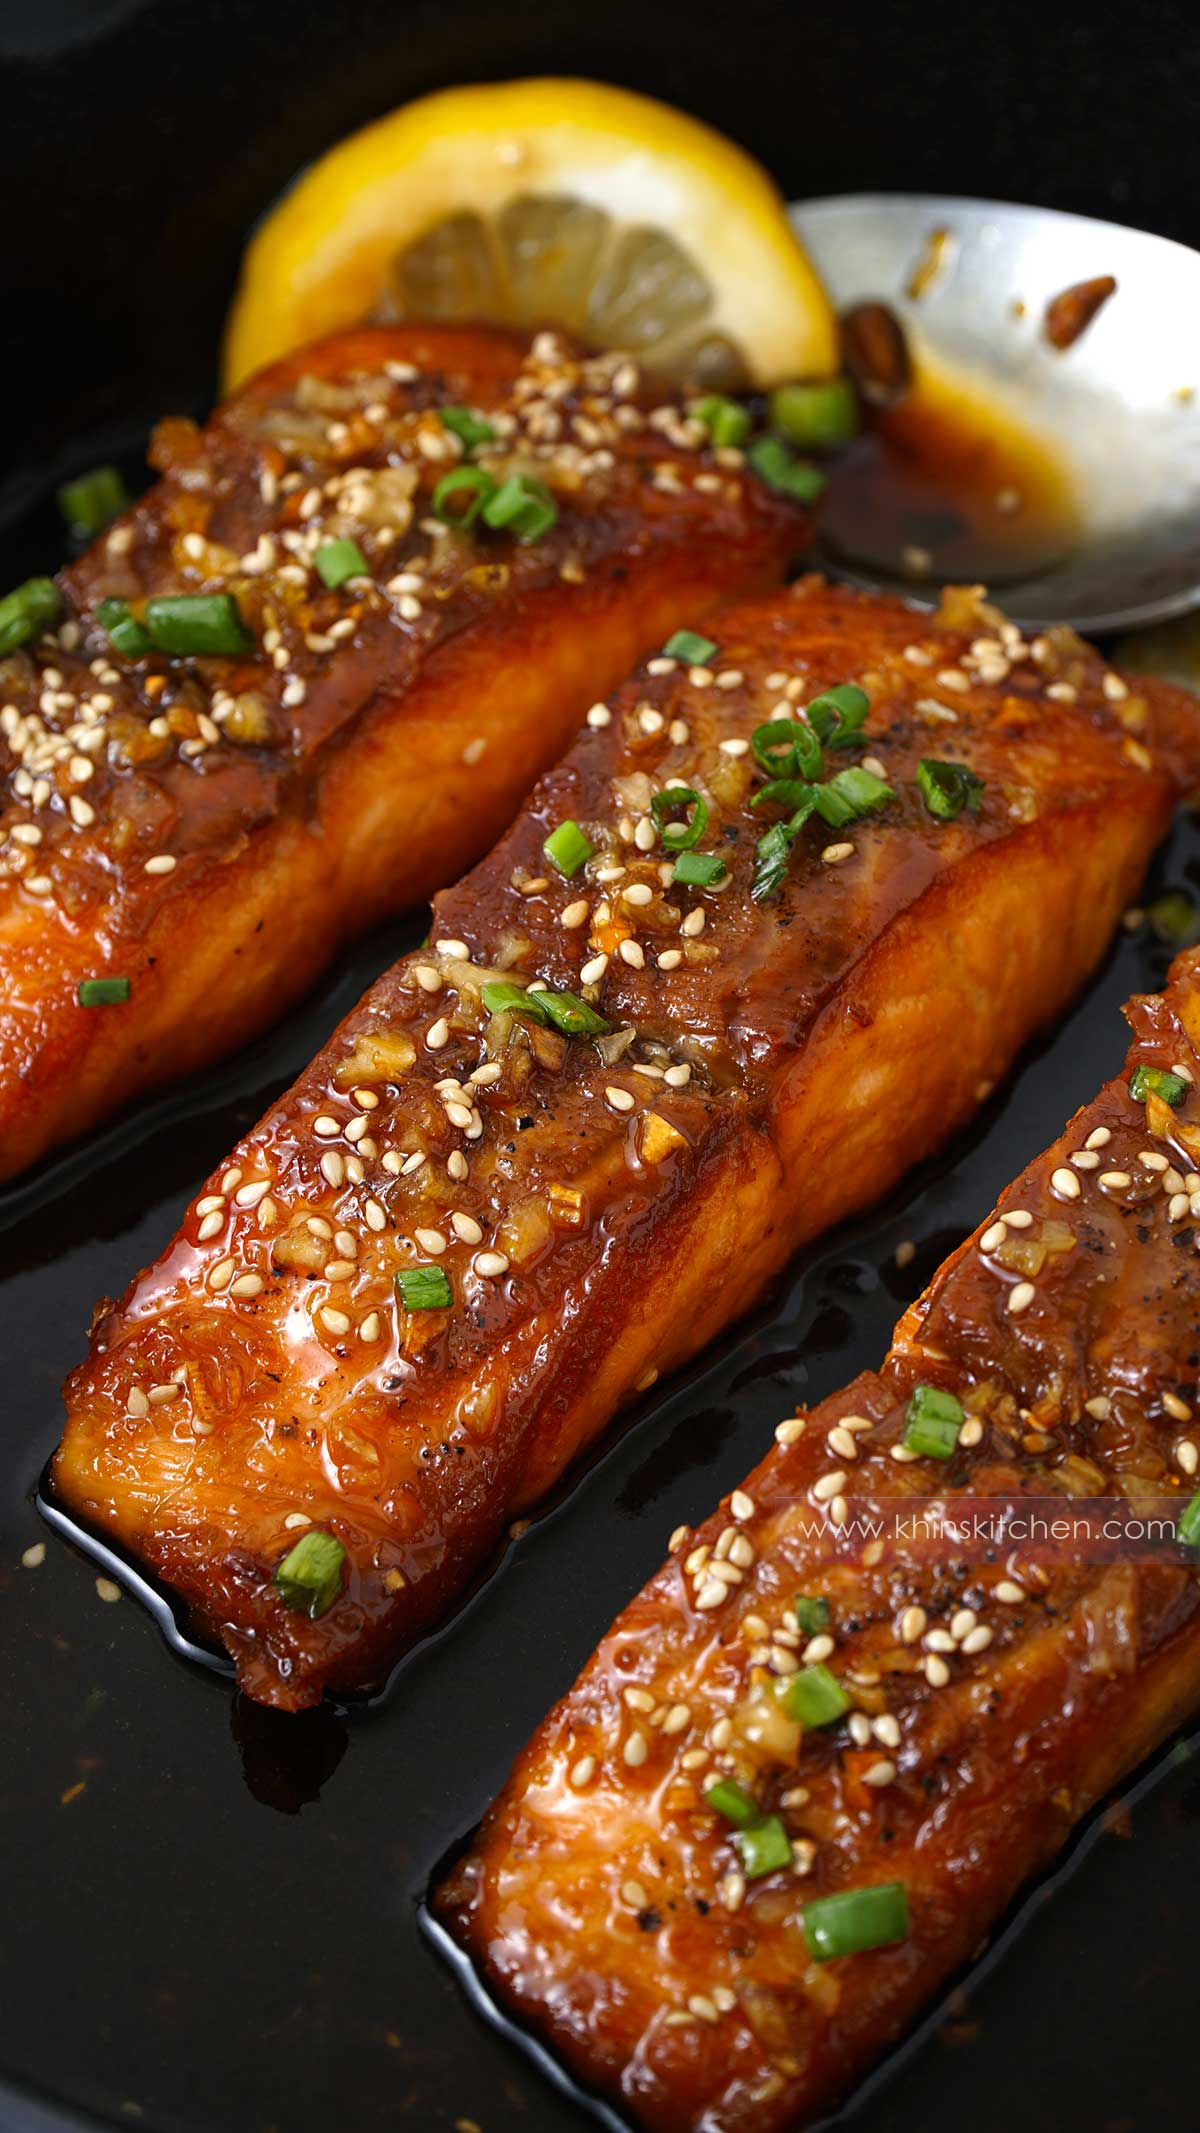 A skillet filled with honey garlic salmon.